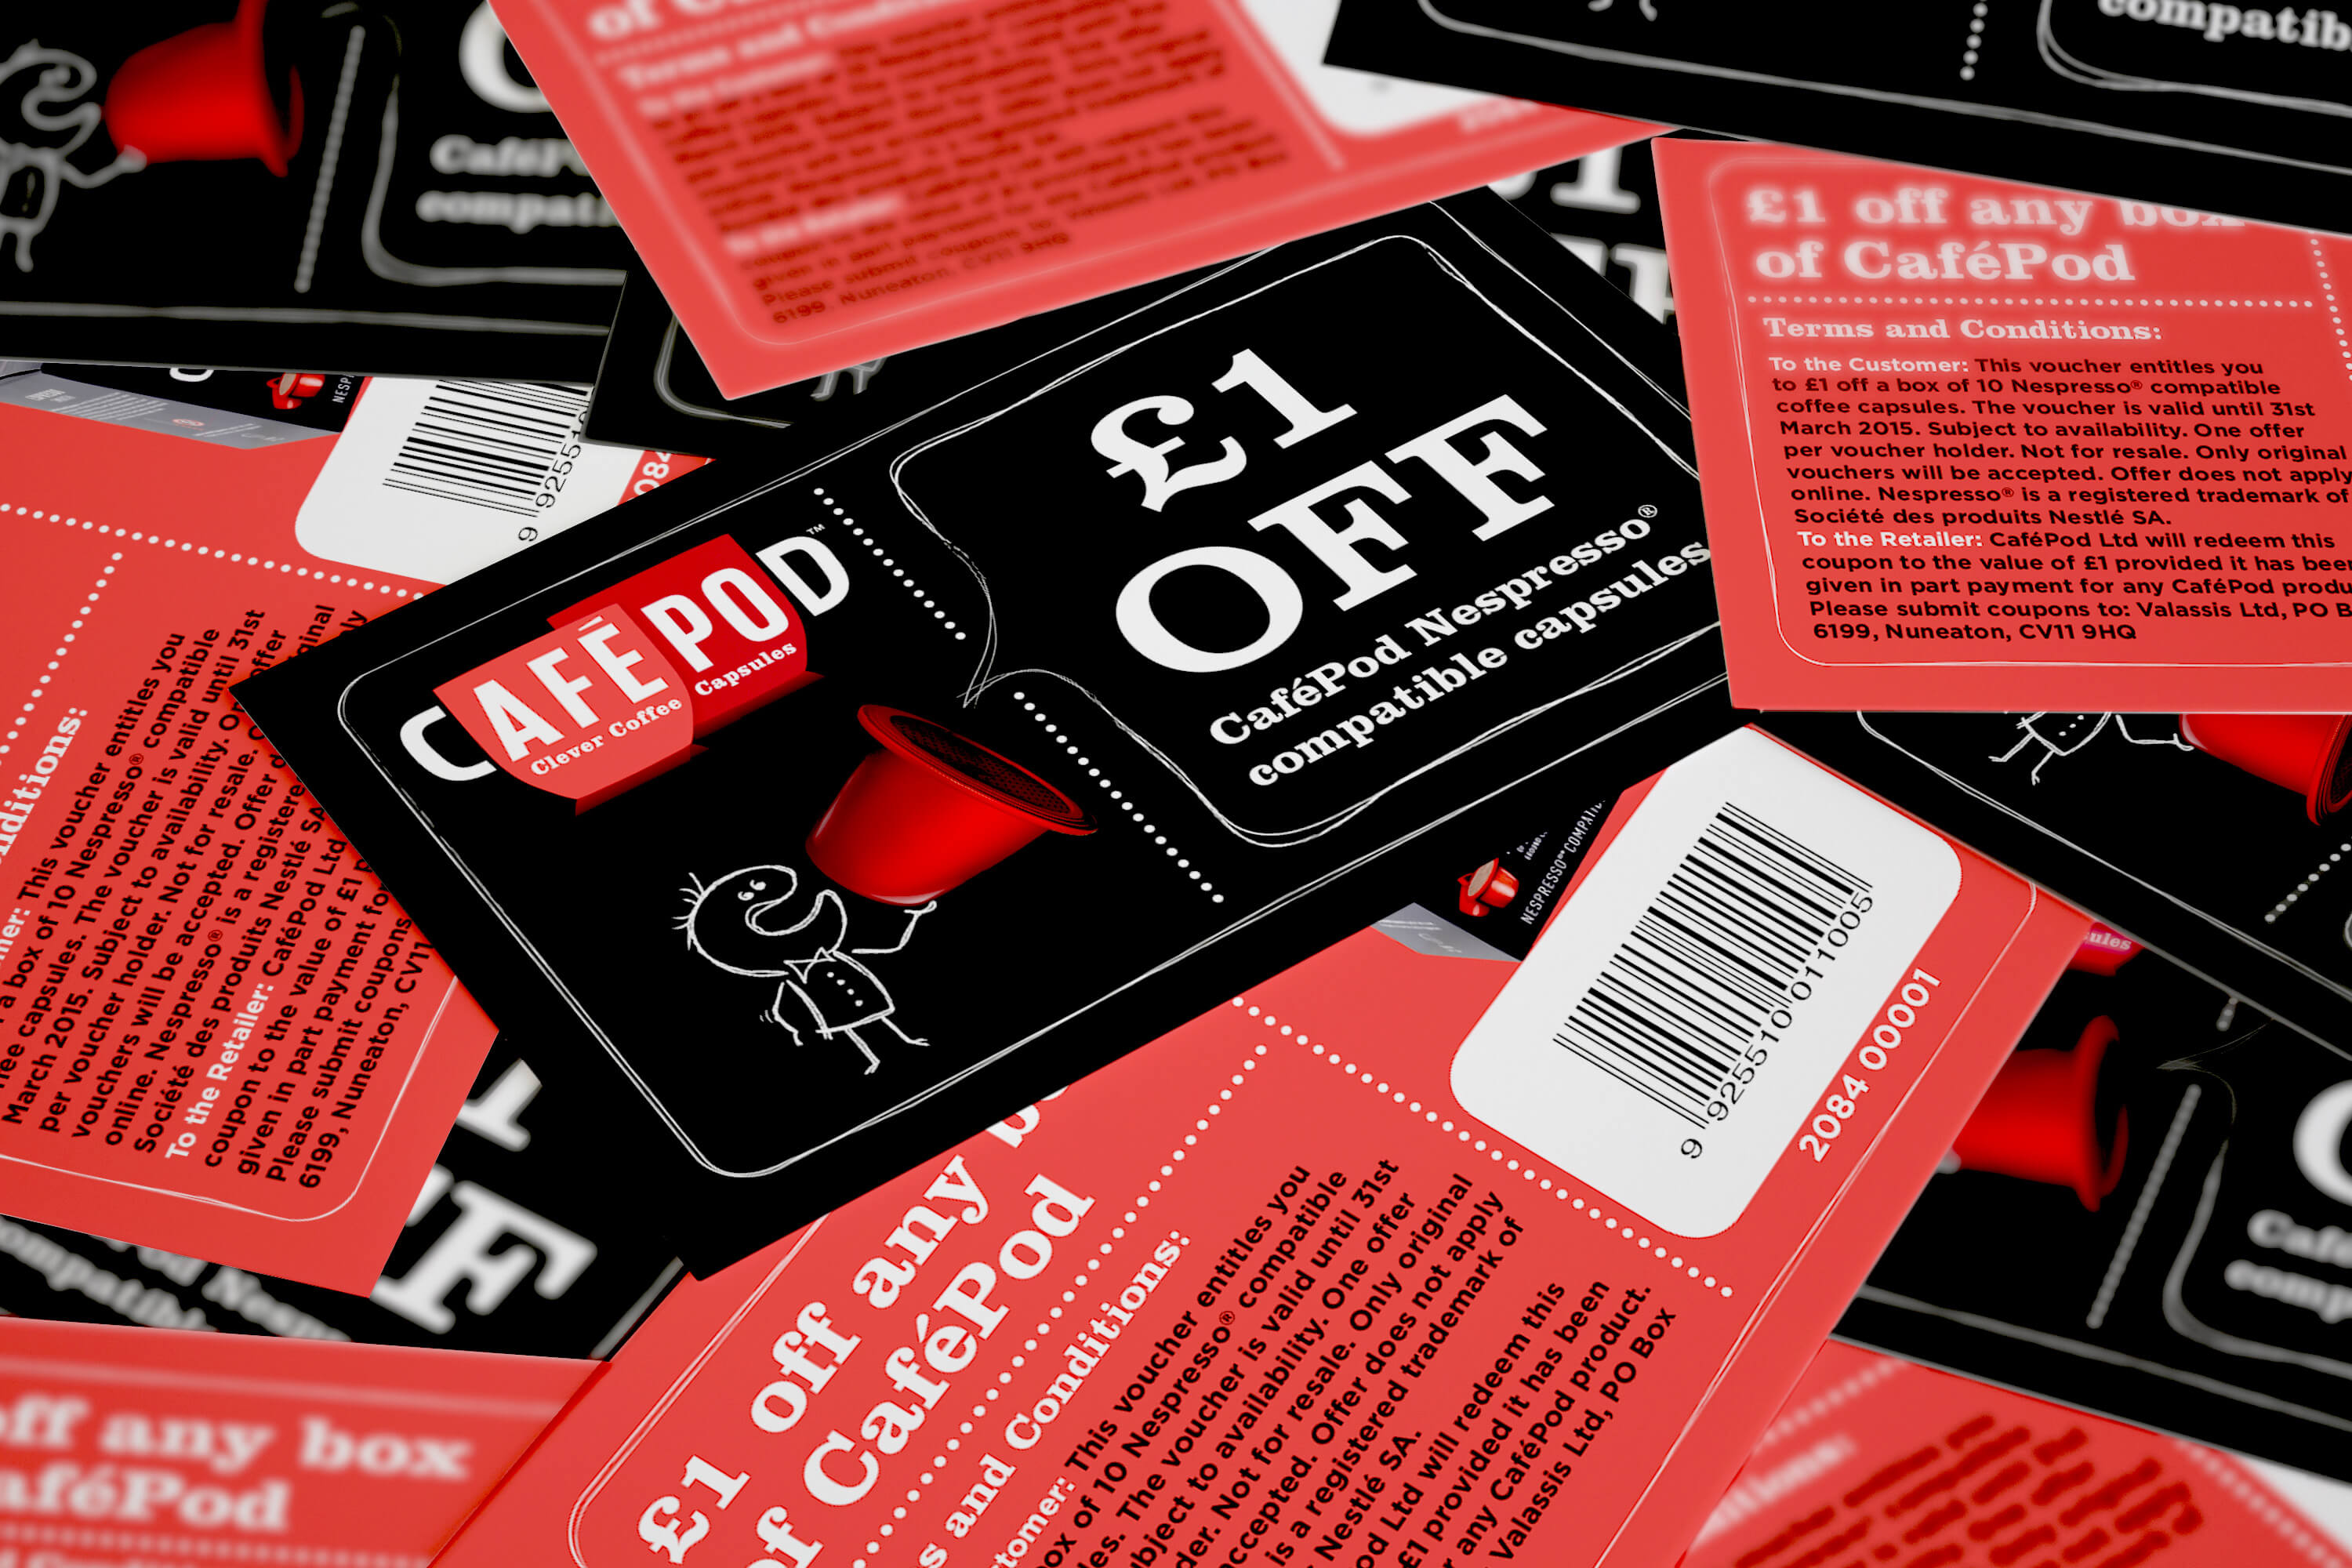 Close up of multiple CaféPod vouchers mixed up and showing both front and back design